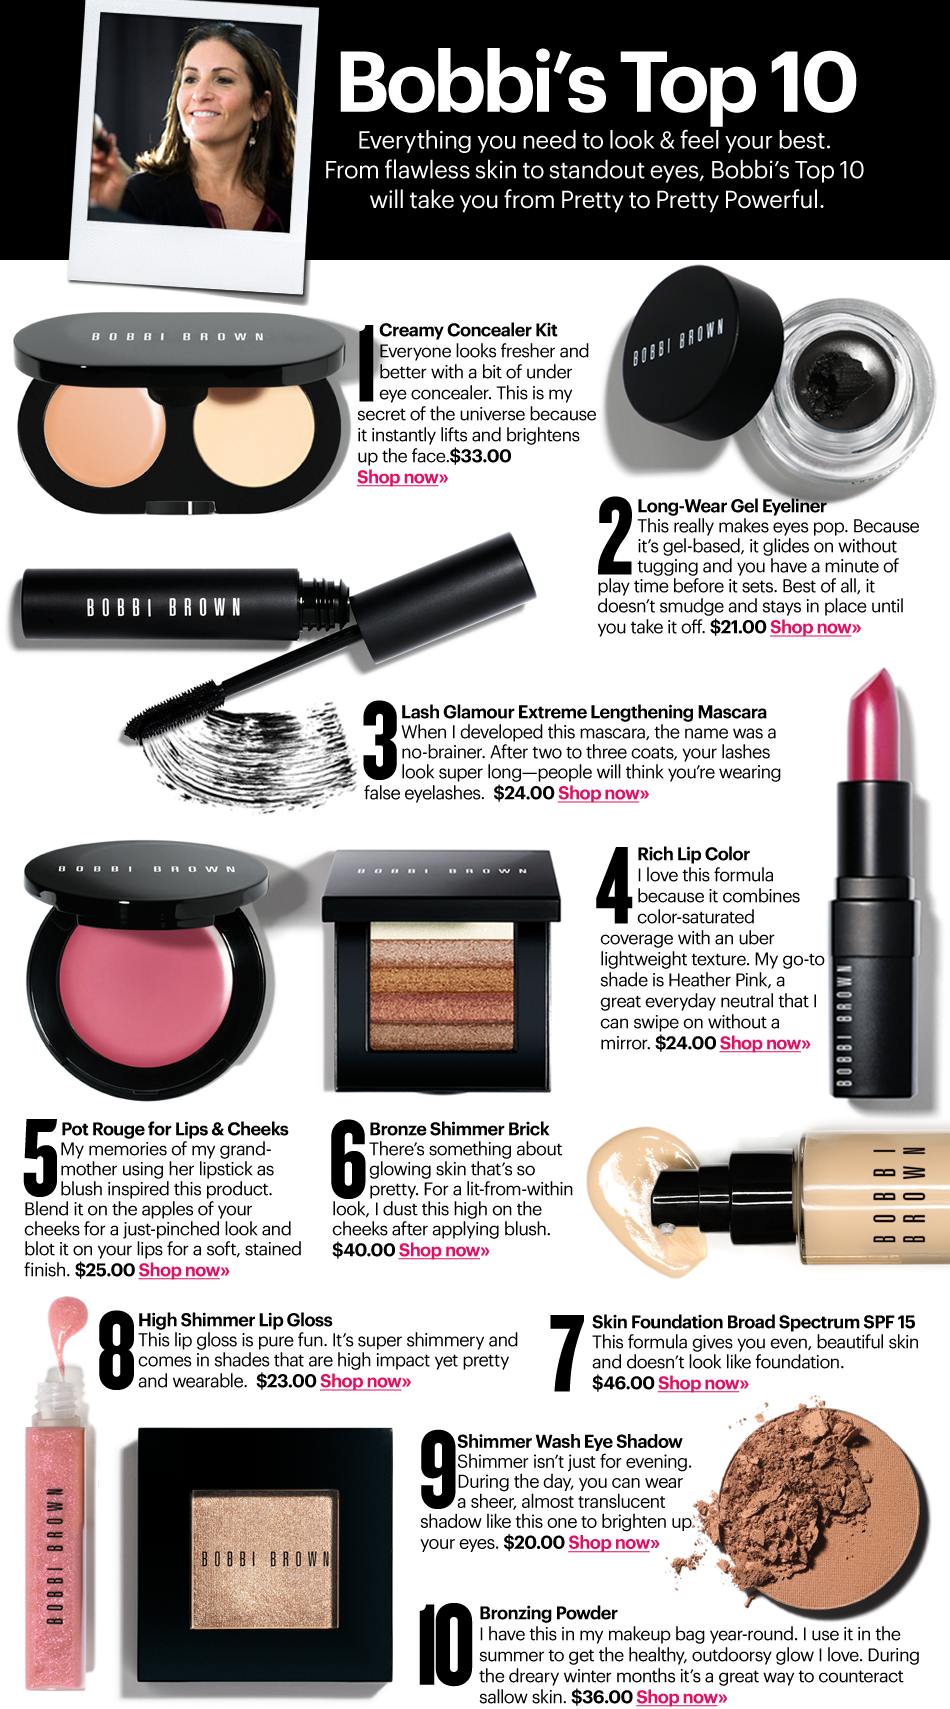 20 These Are Bobbi Brown S Top Ten Make Up Favorites Create A Page Featuring Your Own Top Ten List About Anythi Makeup Names Bobbi Brown Makeup Brown Makeup